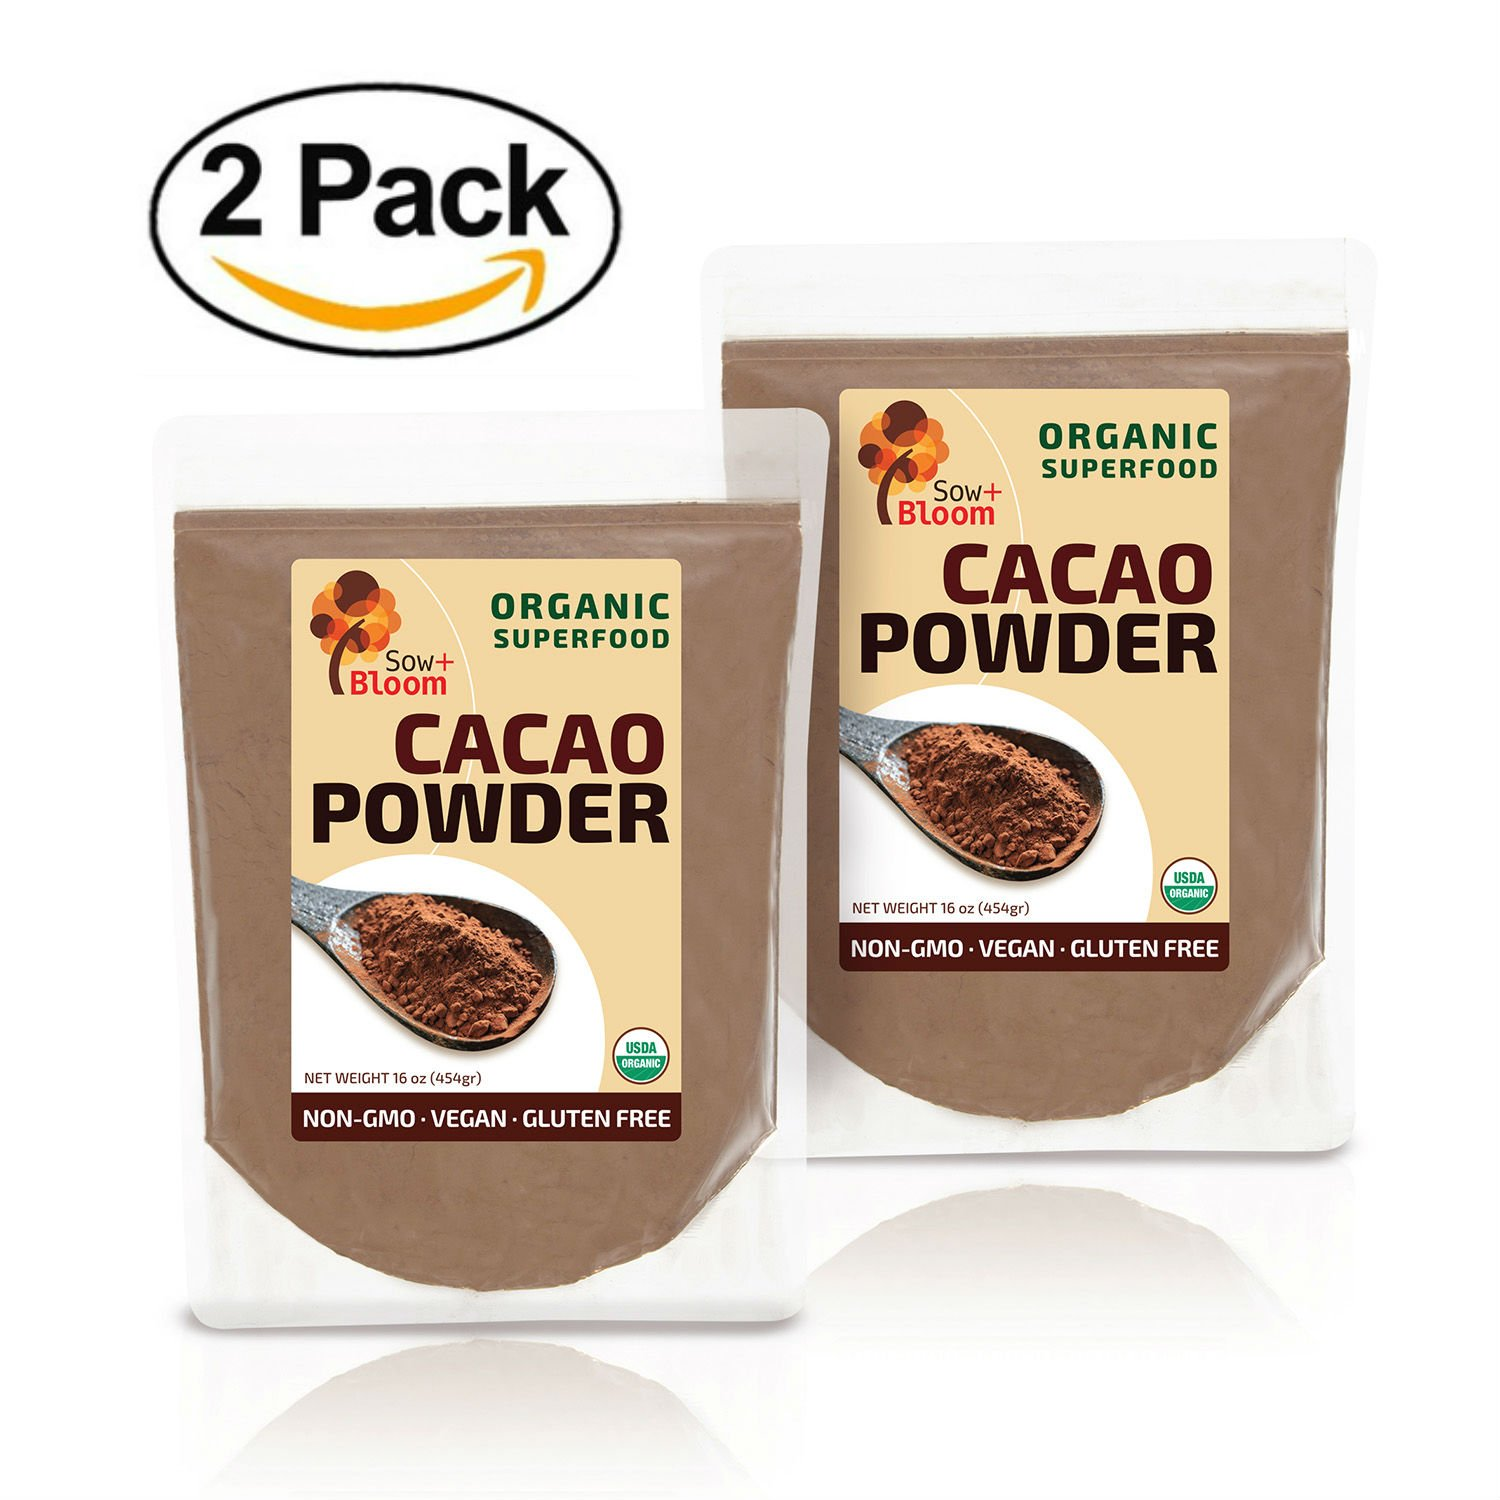 Cacao Powder Raw Organic Unsweetened Superfood by SOW+BLOOM – Sugar Free, Gluten Free, Non GMO – 1 lb (16 oz) 2 PACK, Not Cocoa Powder